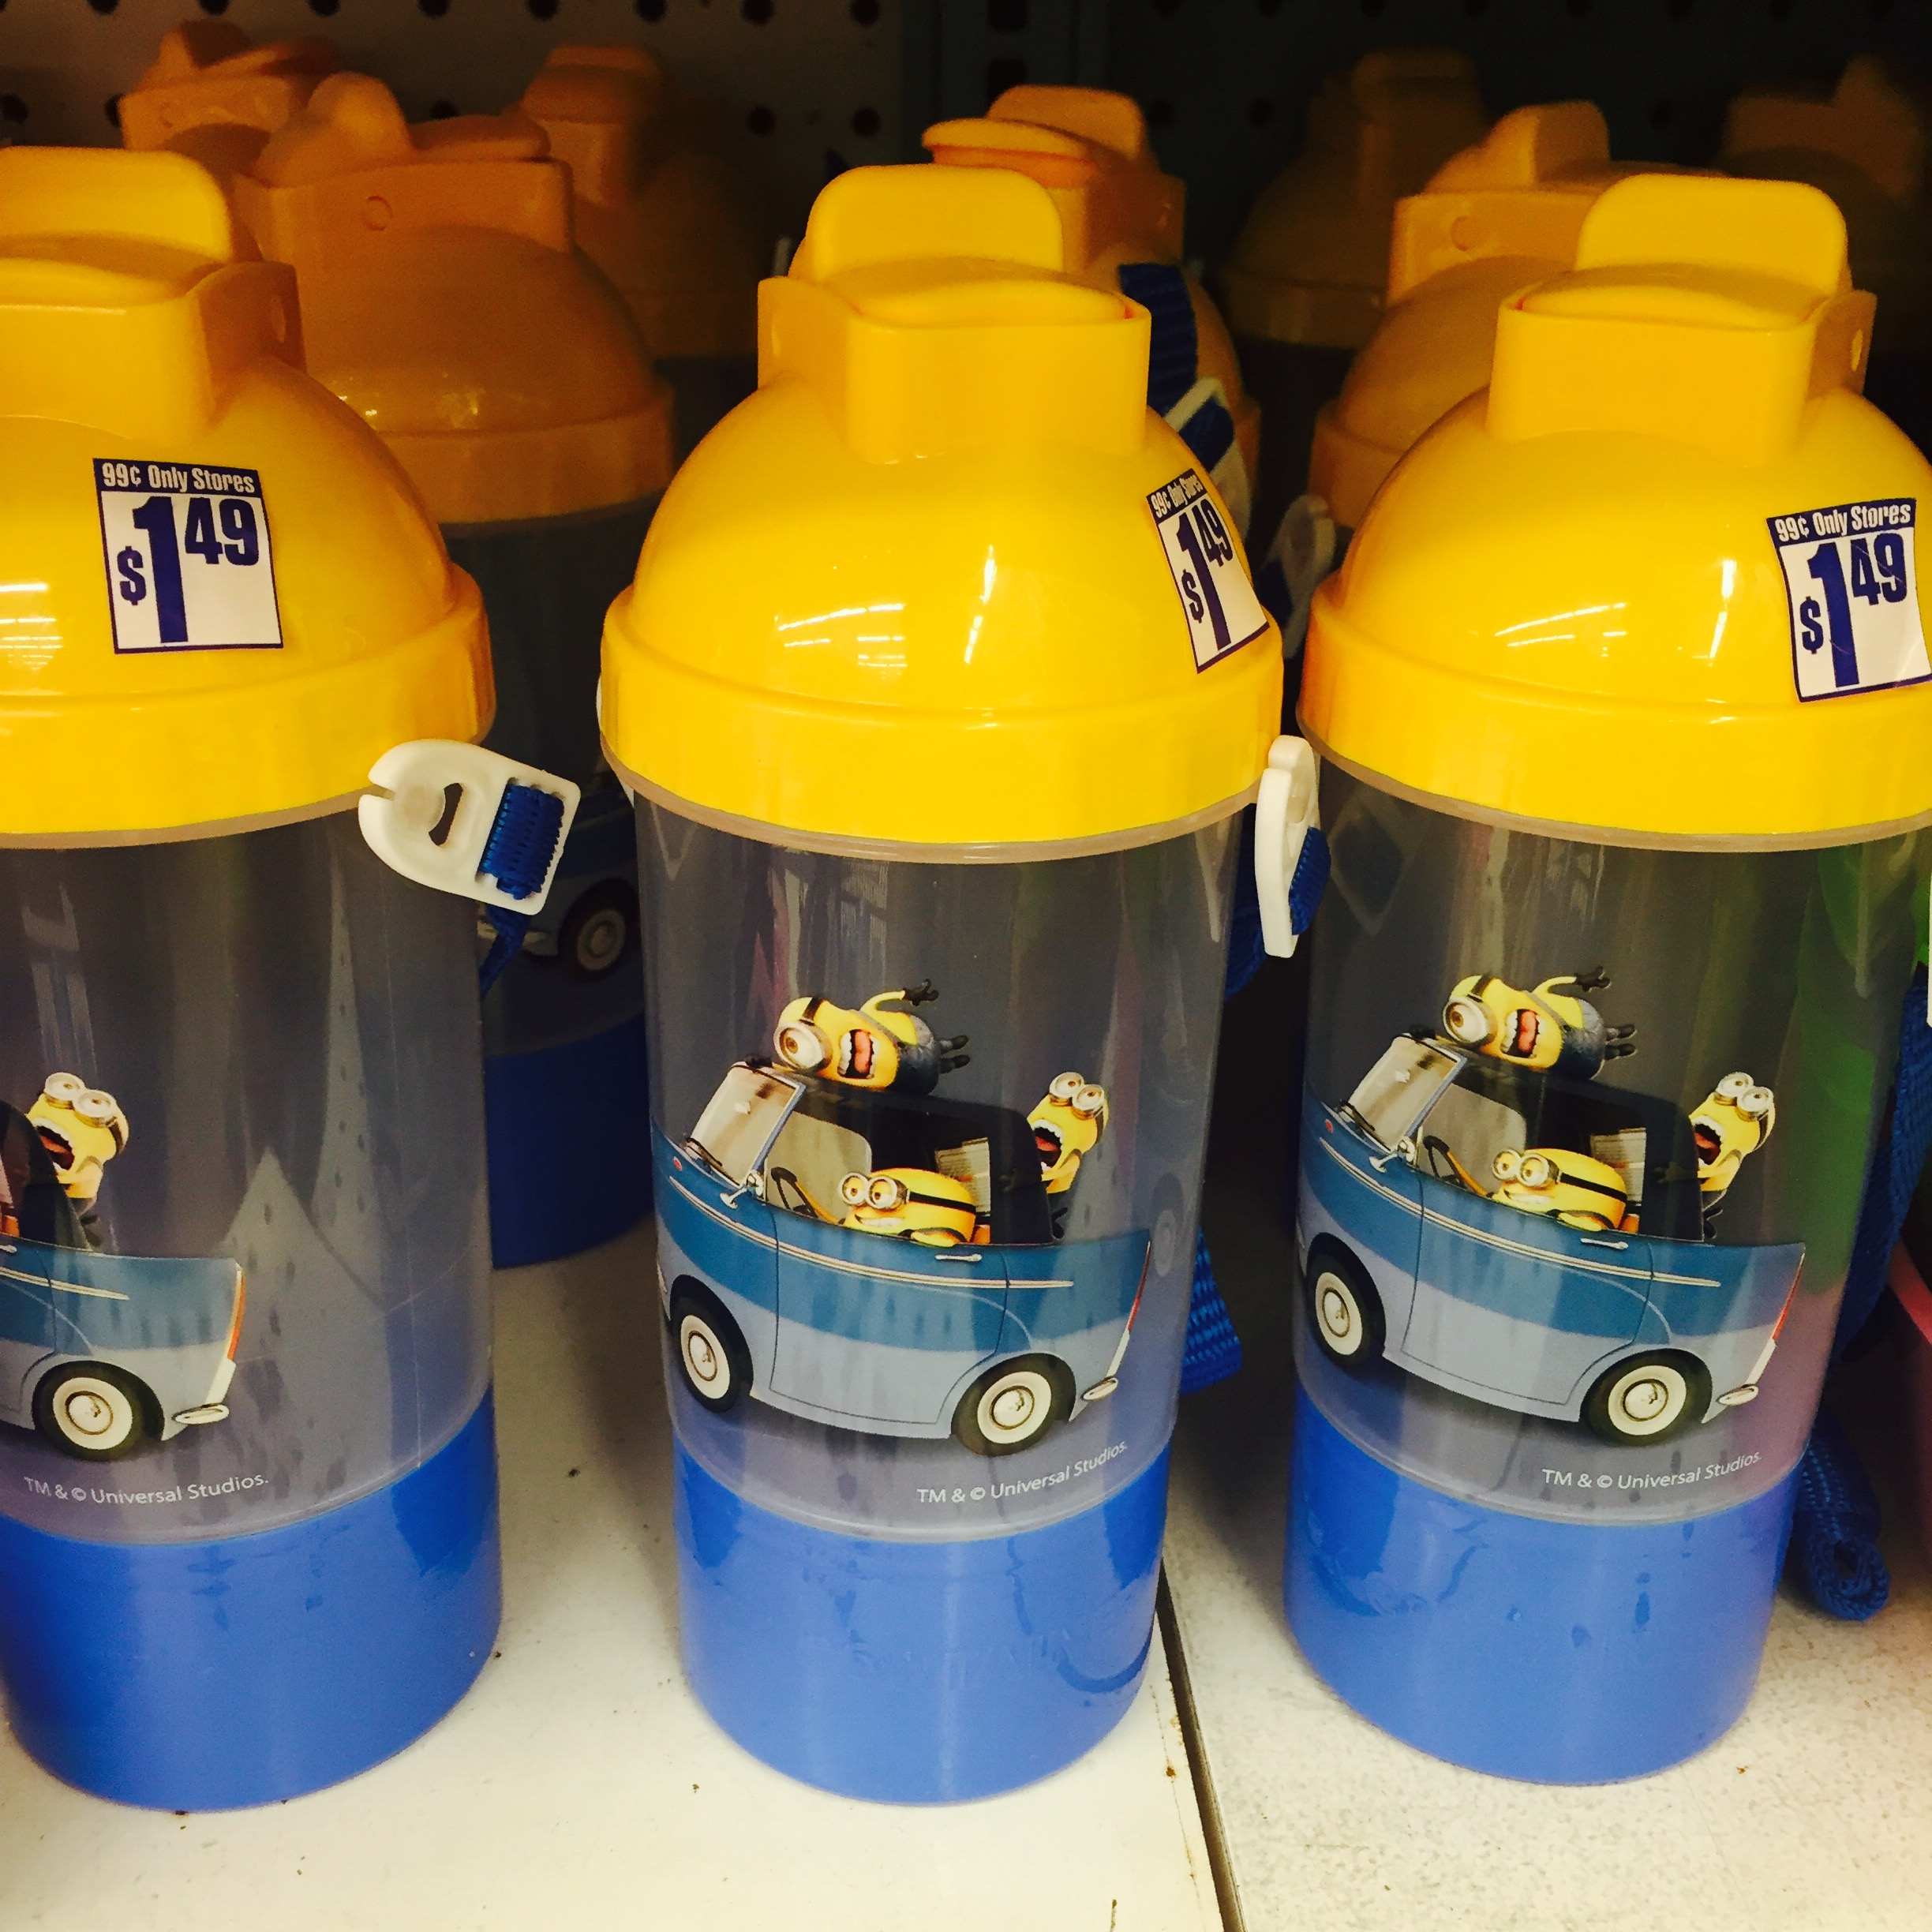 Minion Cups 99 Cents Only Store